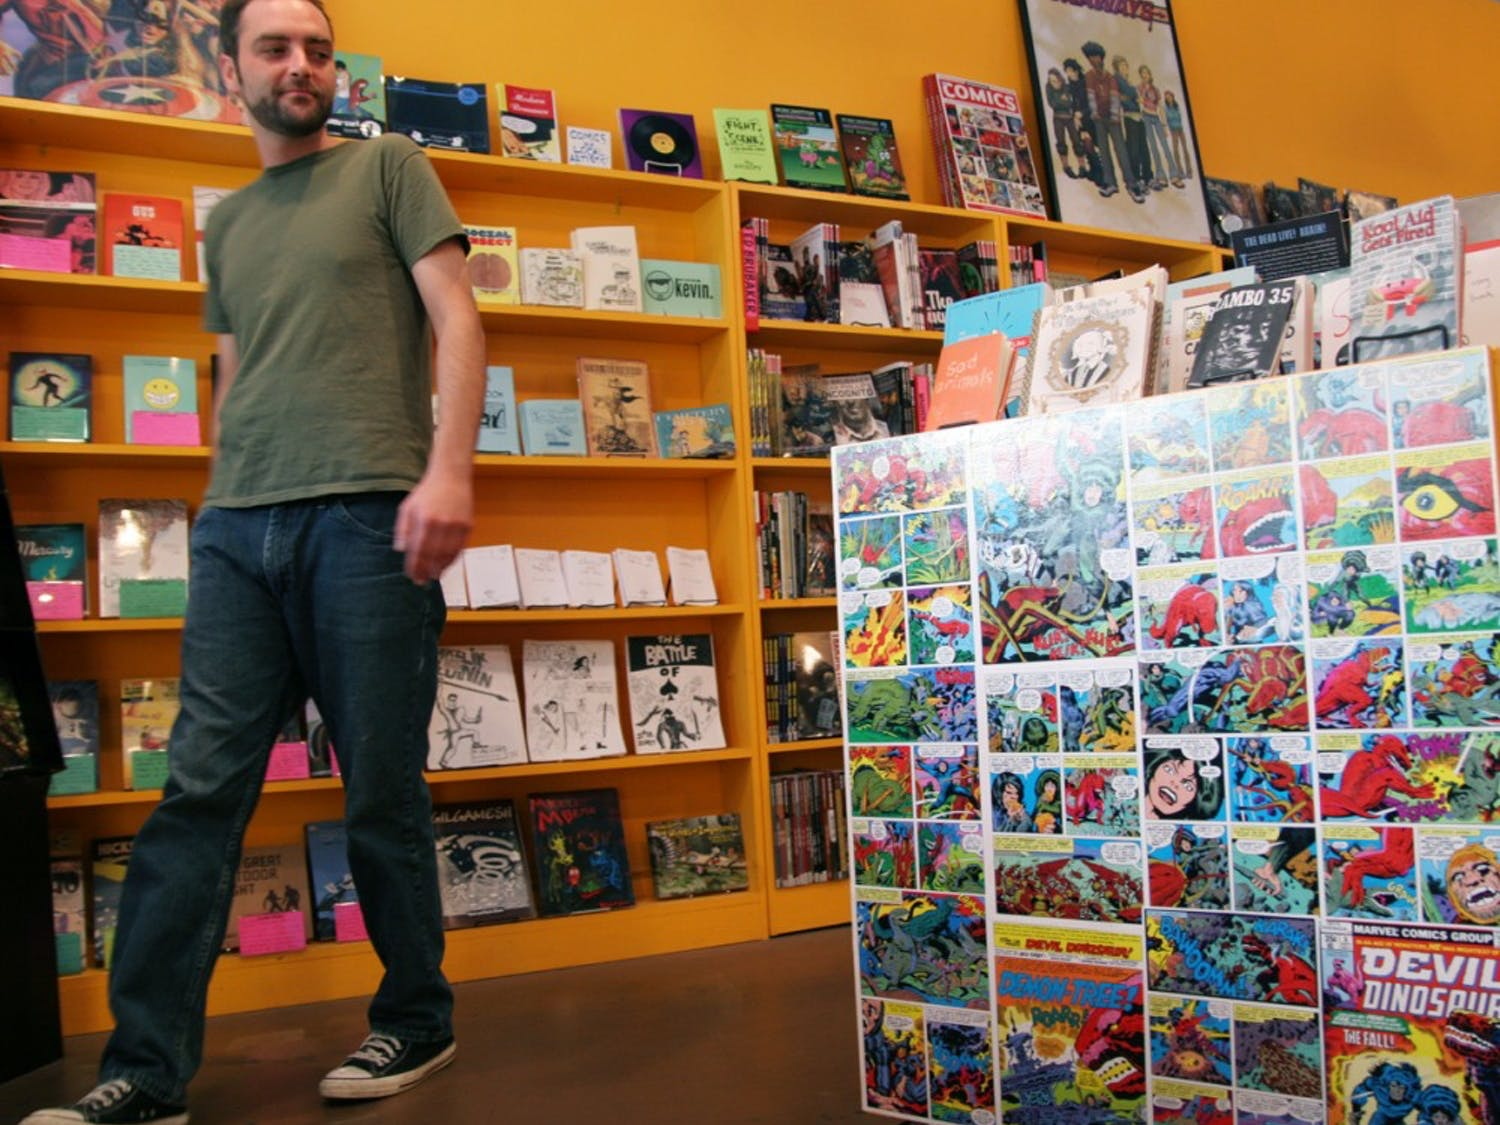 Mac Lomax peruses the local artist section of Chapel Hill Comics on West Franklin Street, which includes work by Yana Levy, 8, of Chapel Hill.